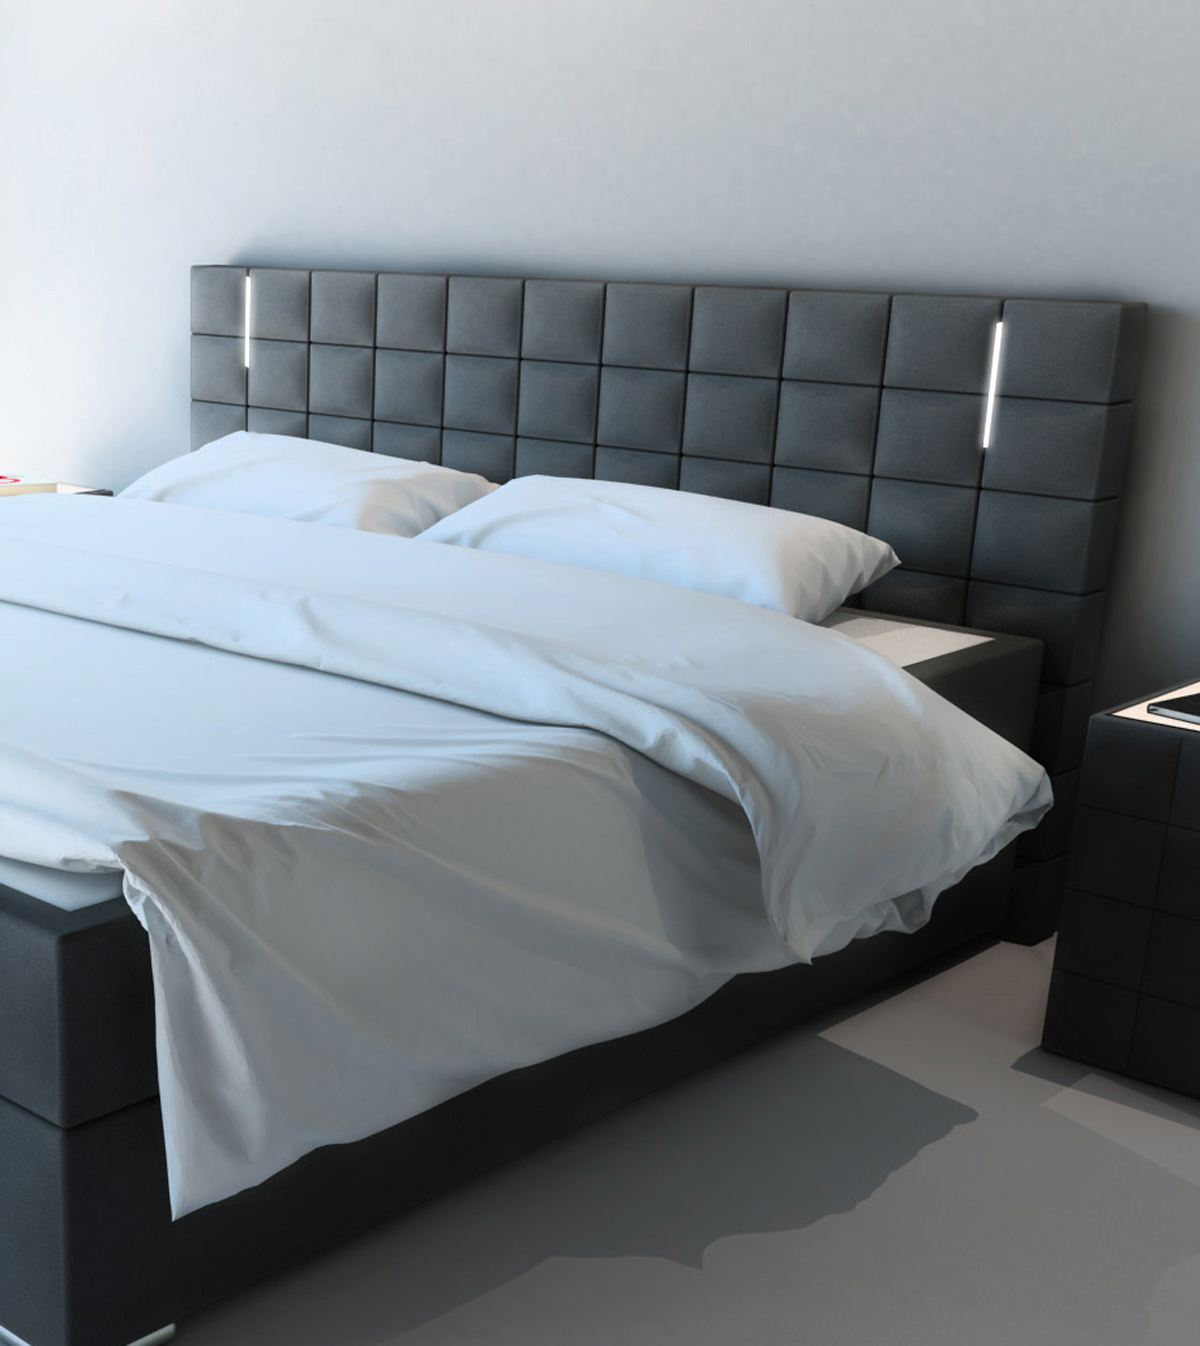 sam boxspringbett hotelbett stoff grau led 180 x 200 cm. Black Bedroom Furniture Sets. Home Design Ideas